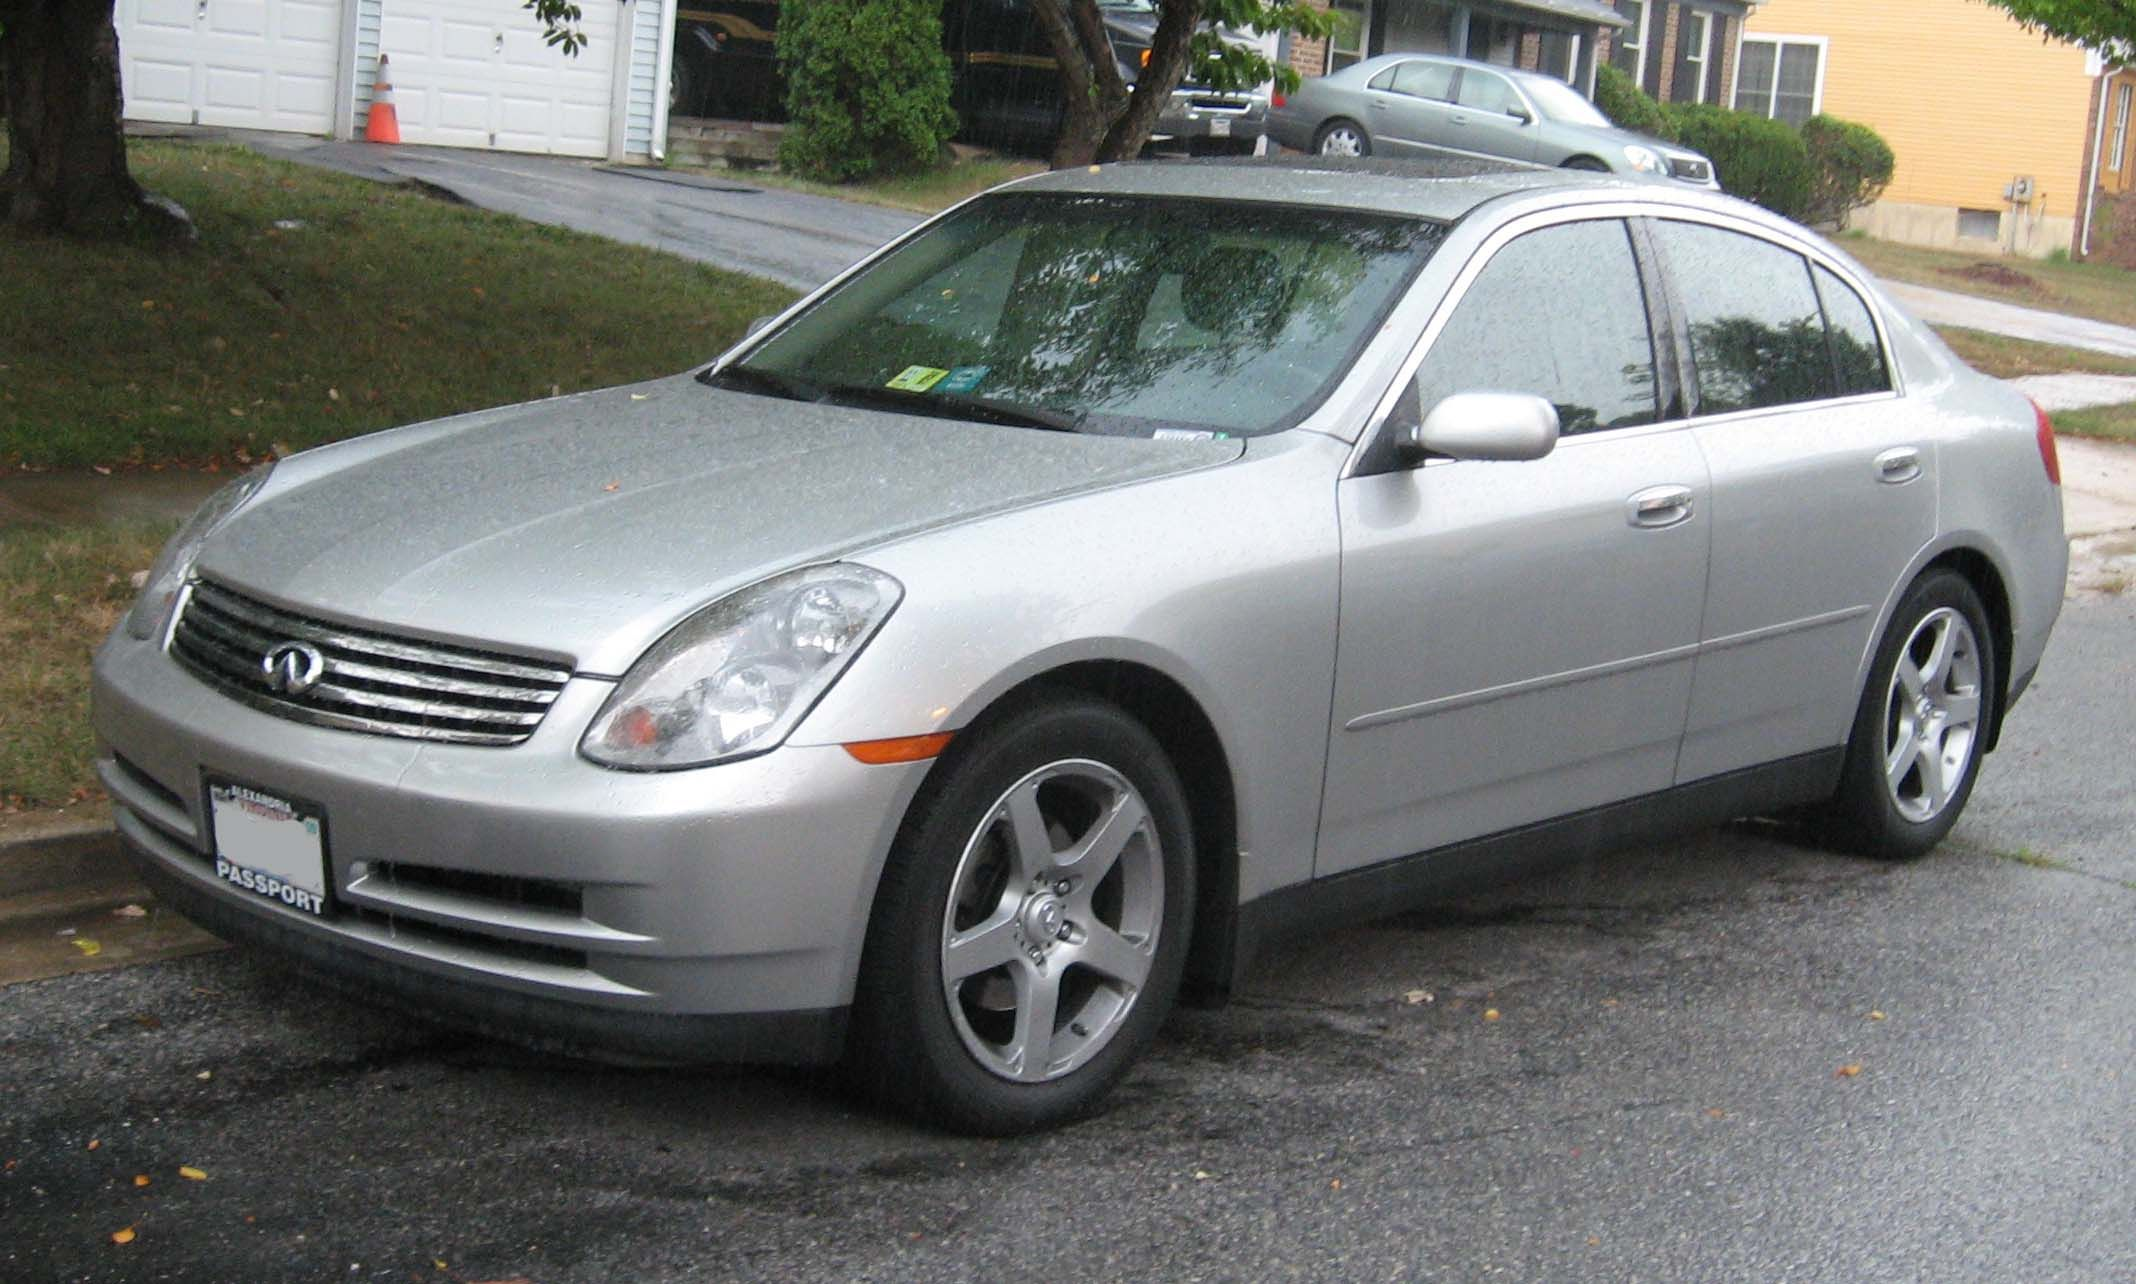 2004 infiniti g35 owned for two years was too fast for me always wanted to gun it too much once completely dusted a bmw 8 series off the lin